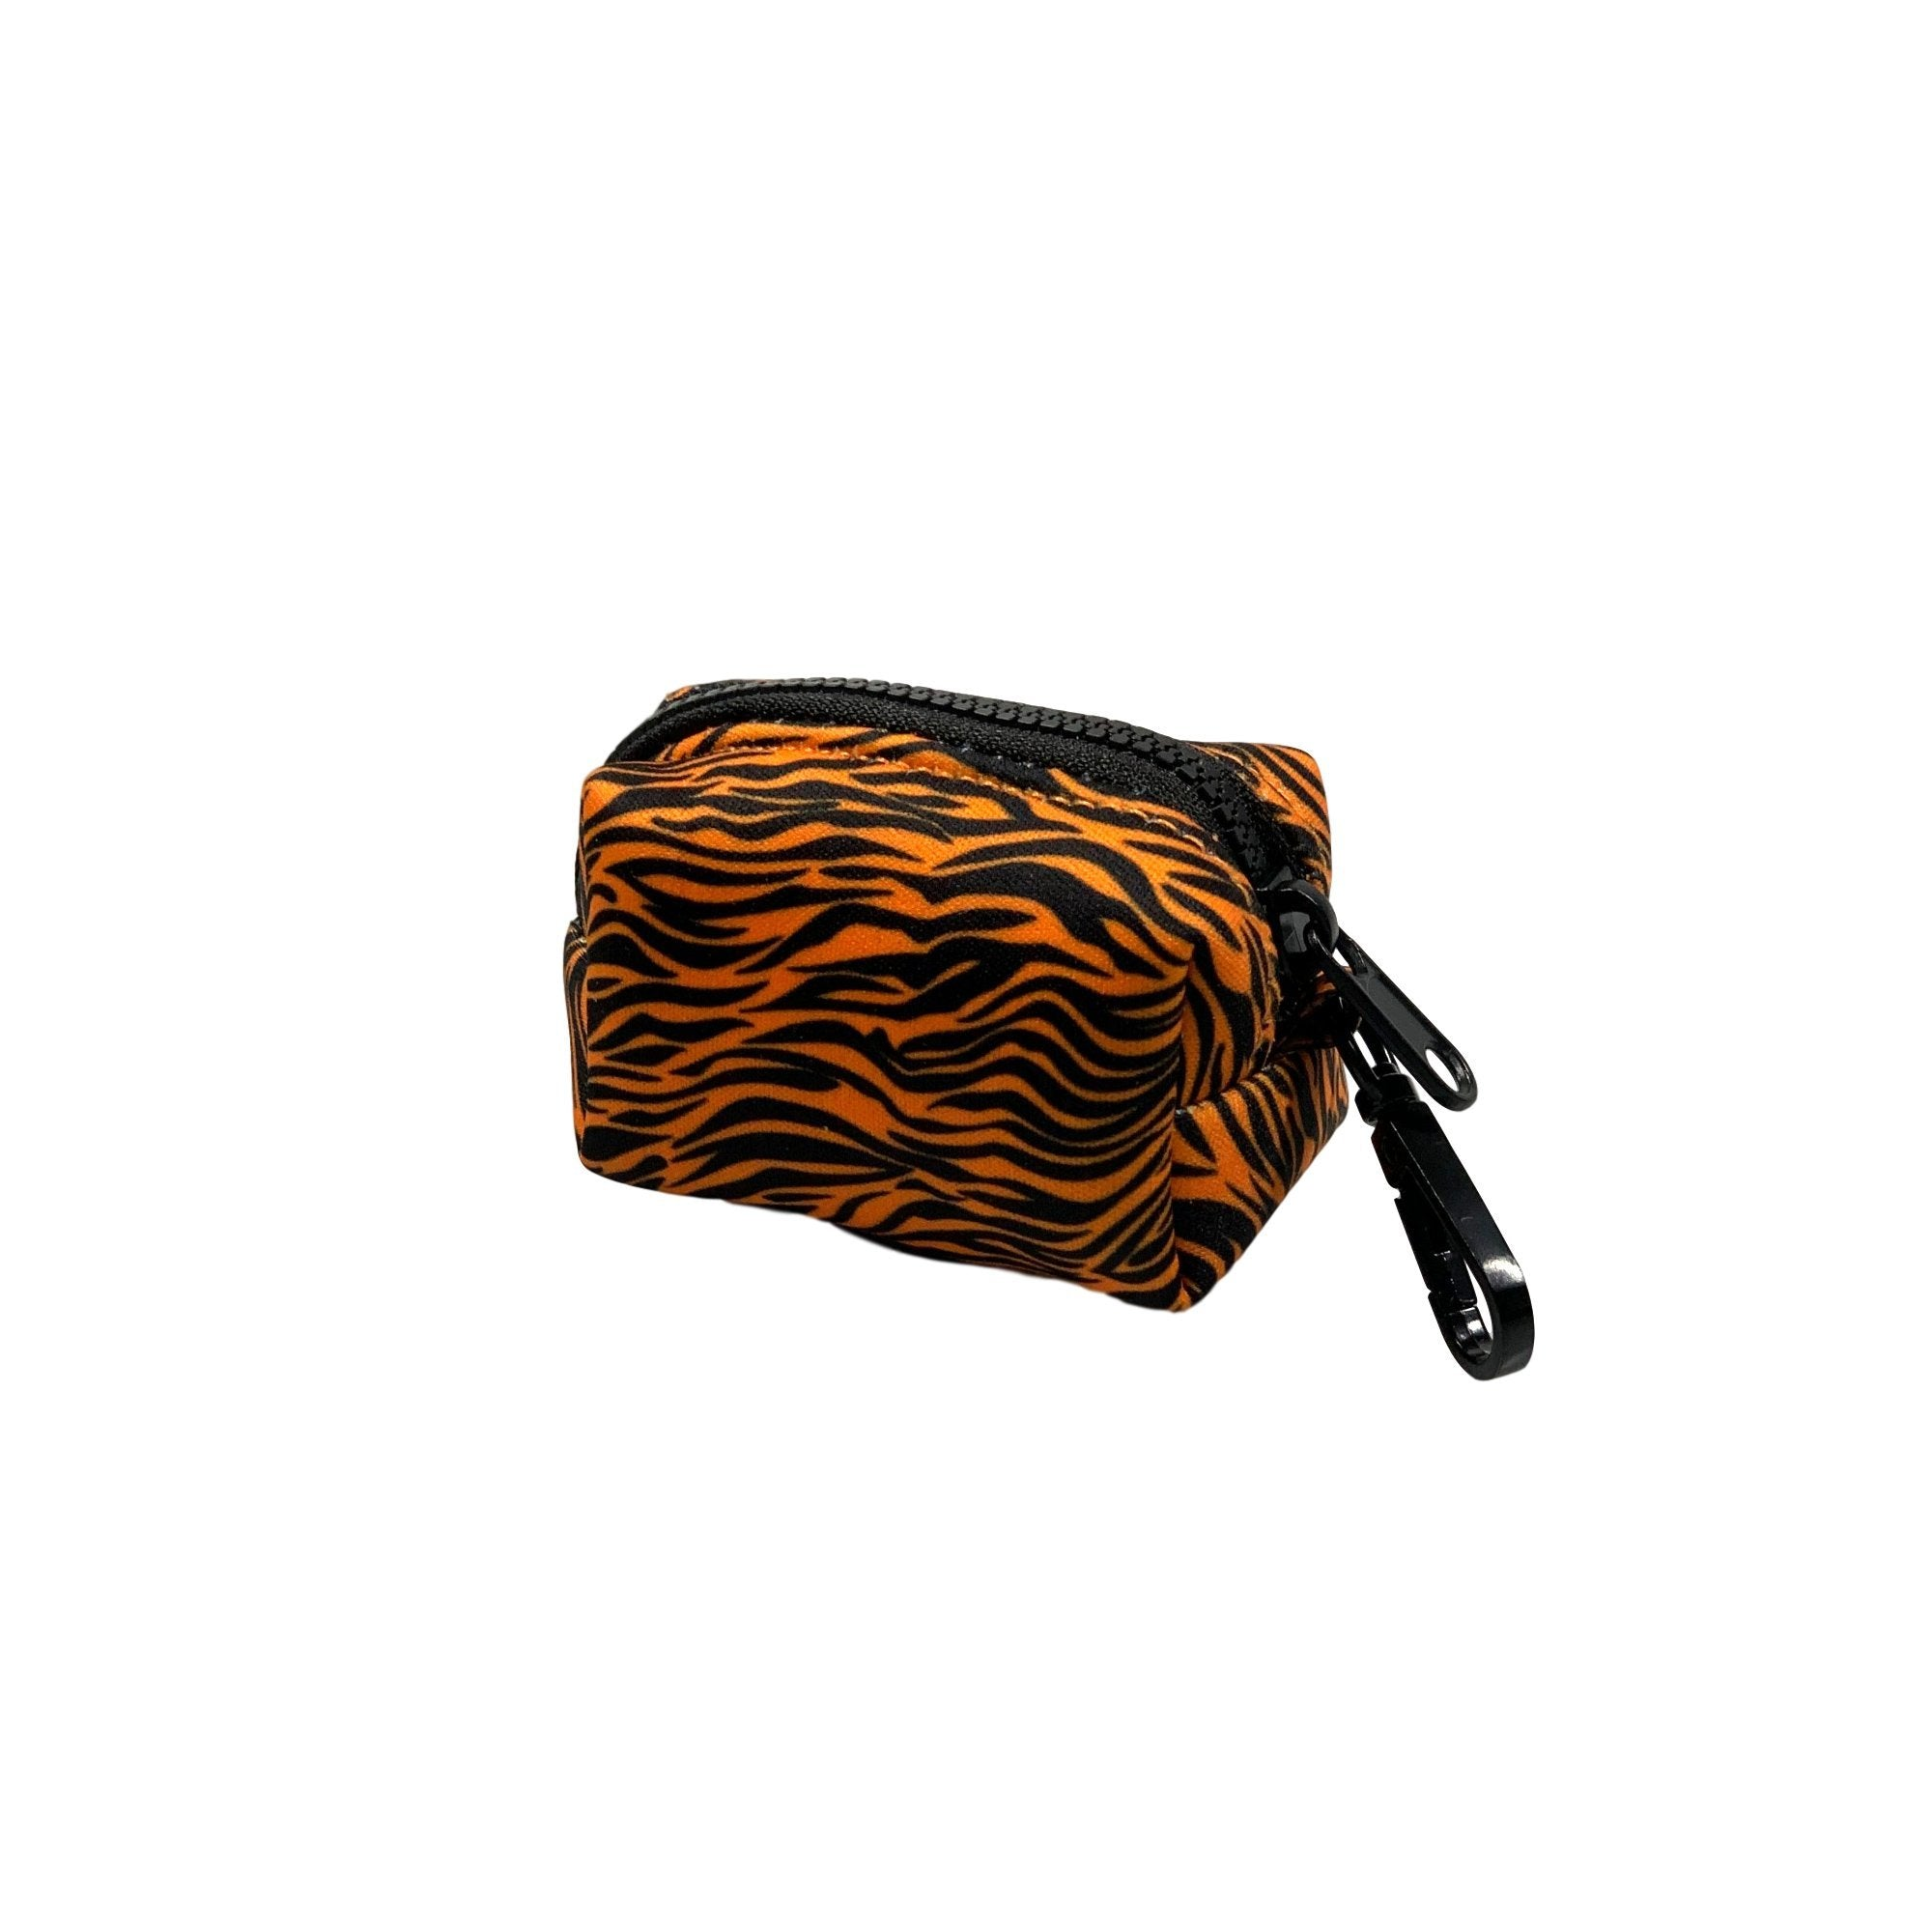 Tiger Poop Bag Holder - Beast & Buckle